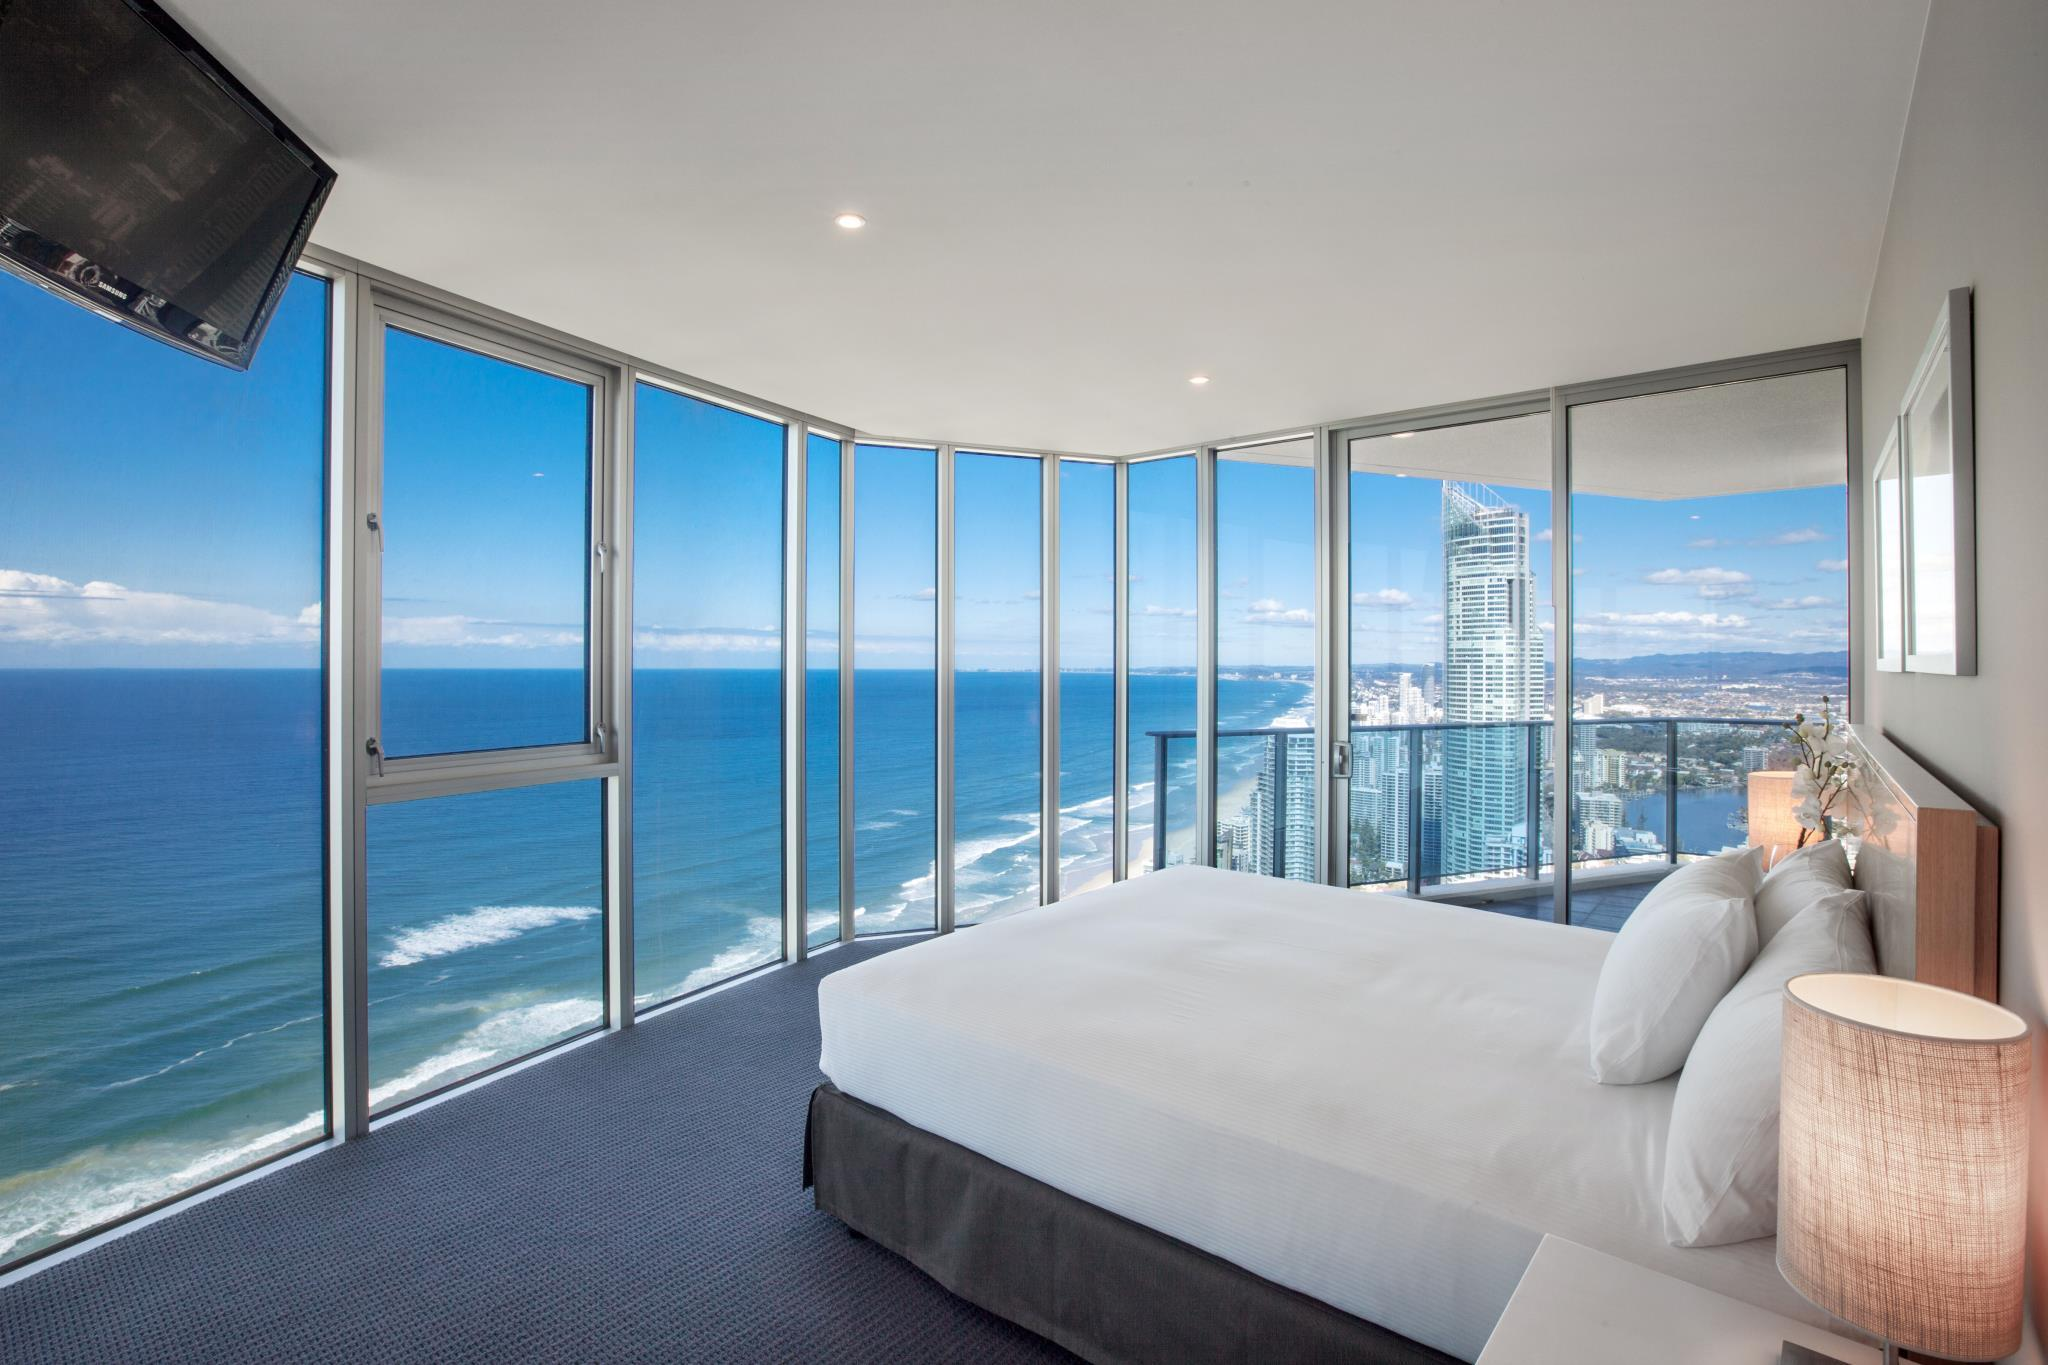 3 Bedroom Residence Ocean View